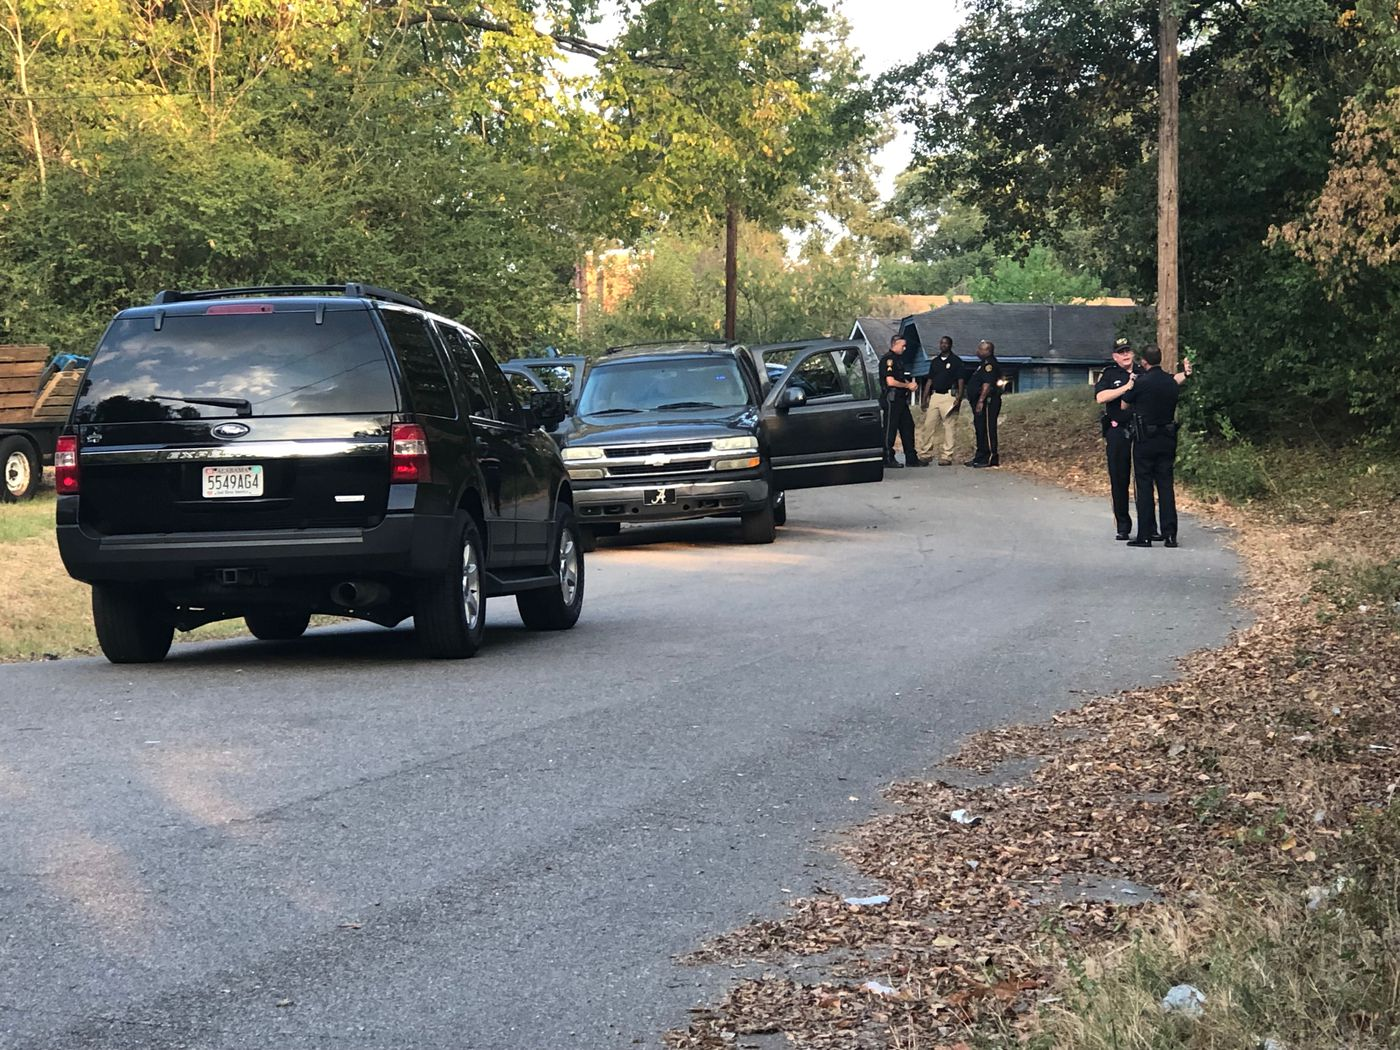 The vehicle used by two suspects to flee after a shot was fired at a Montgomery police officer was later found. One suspect was taken into custody.